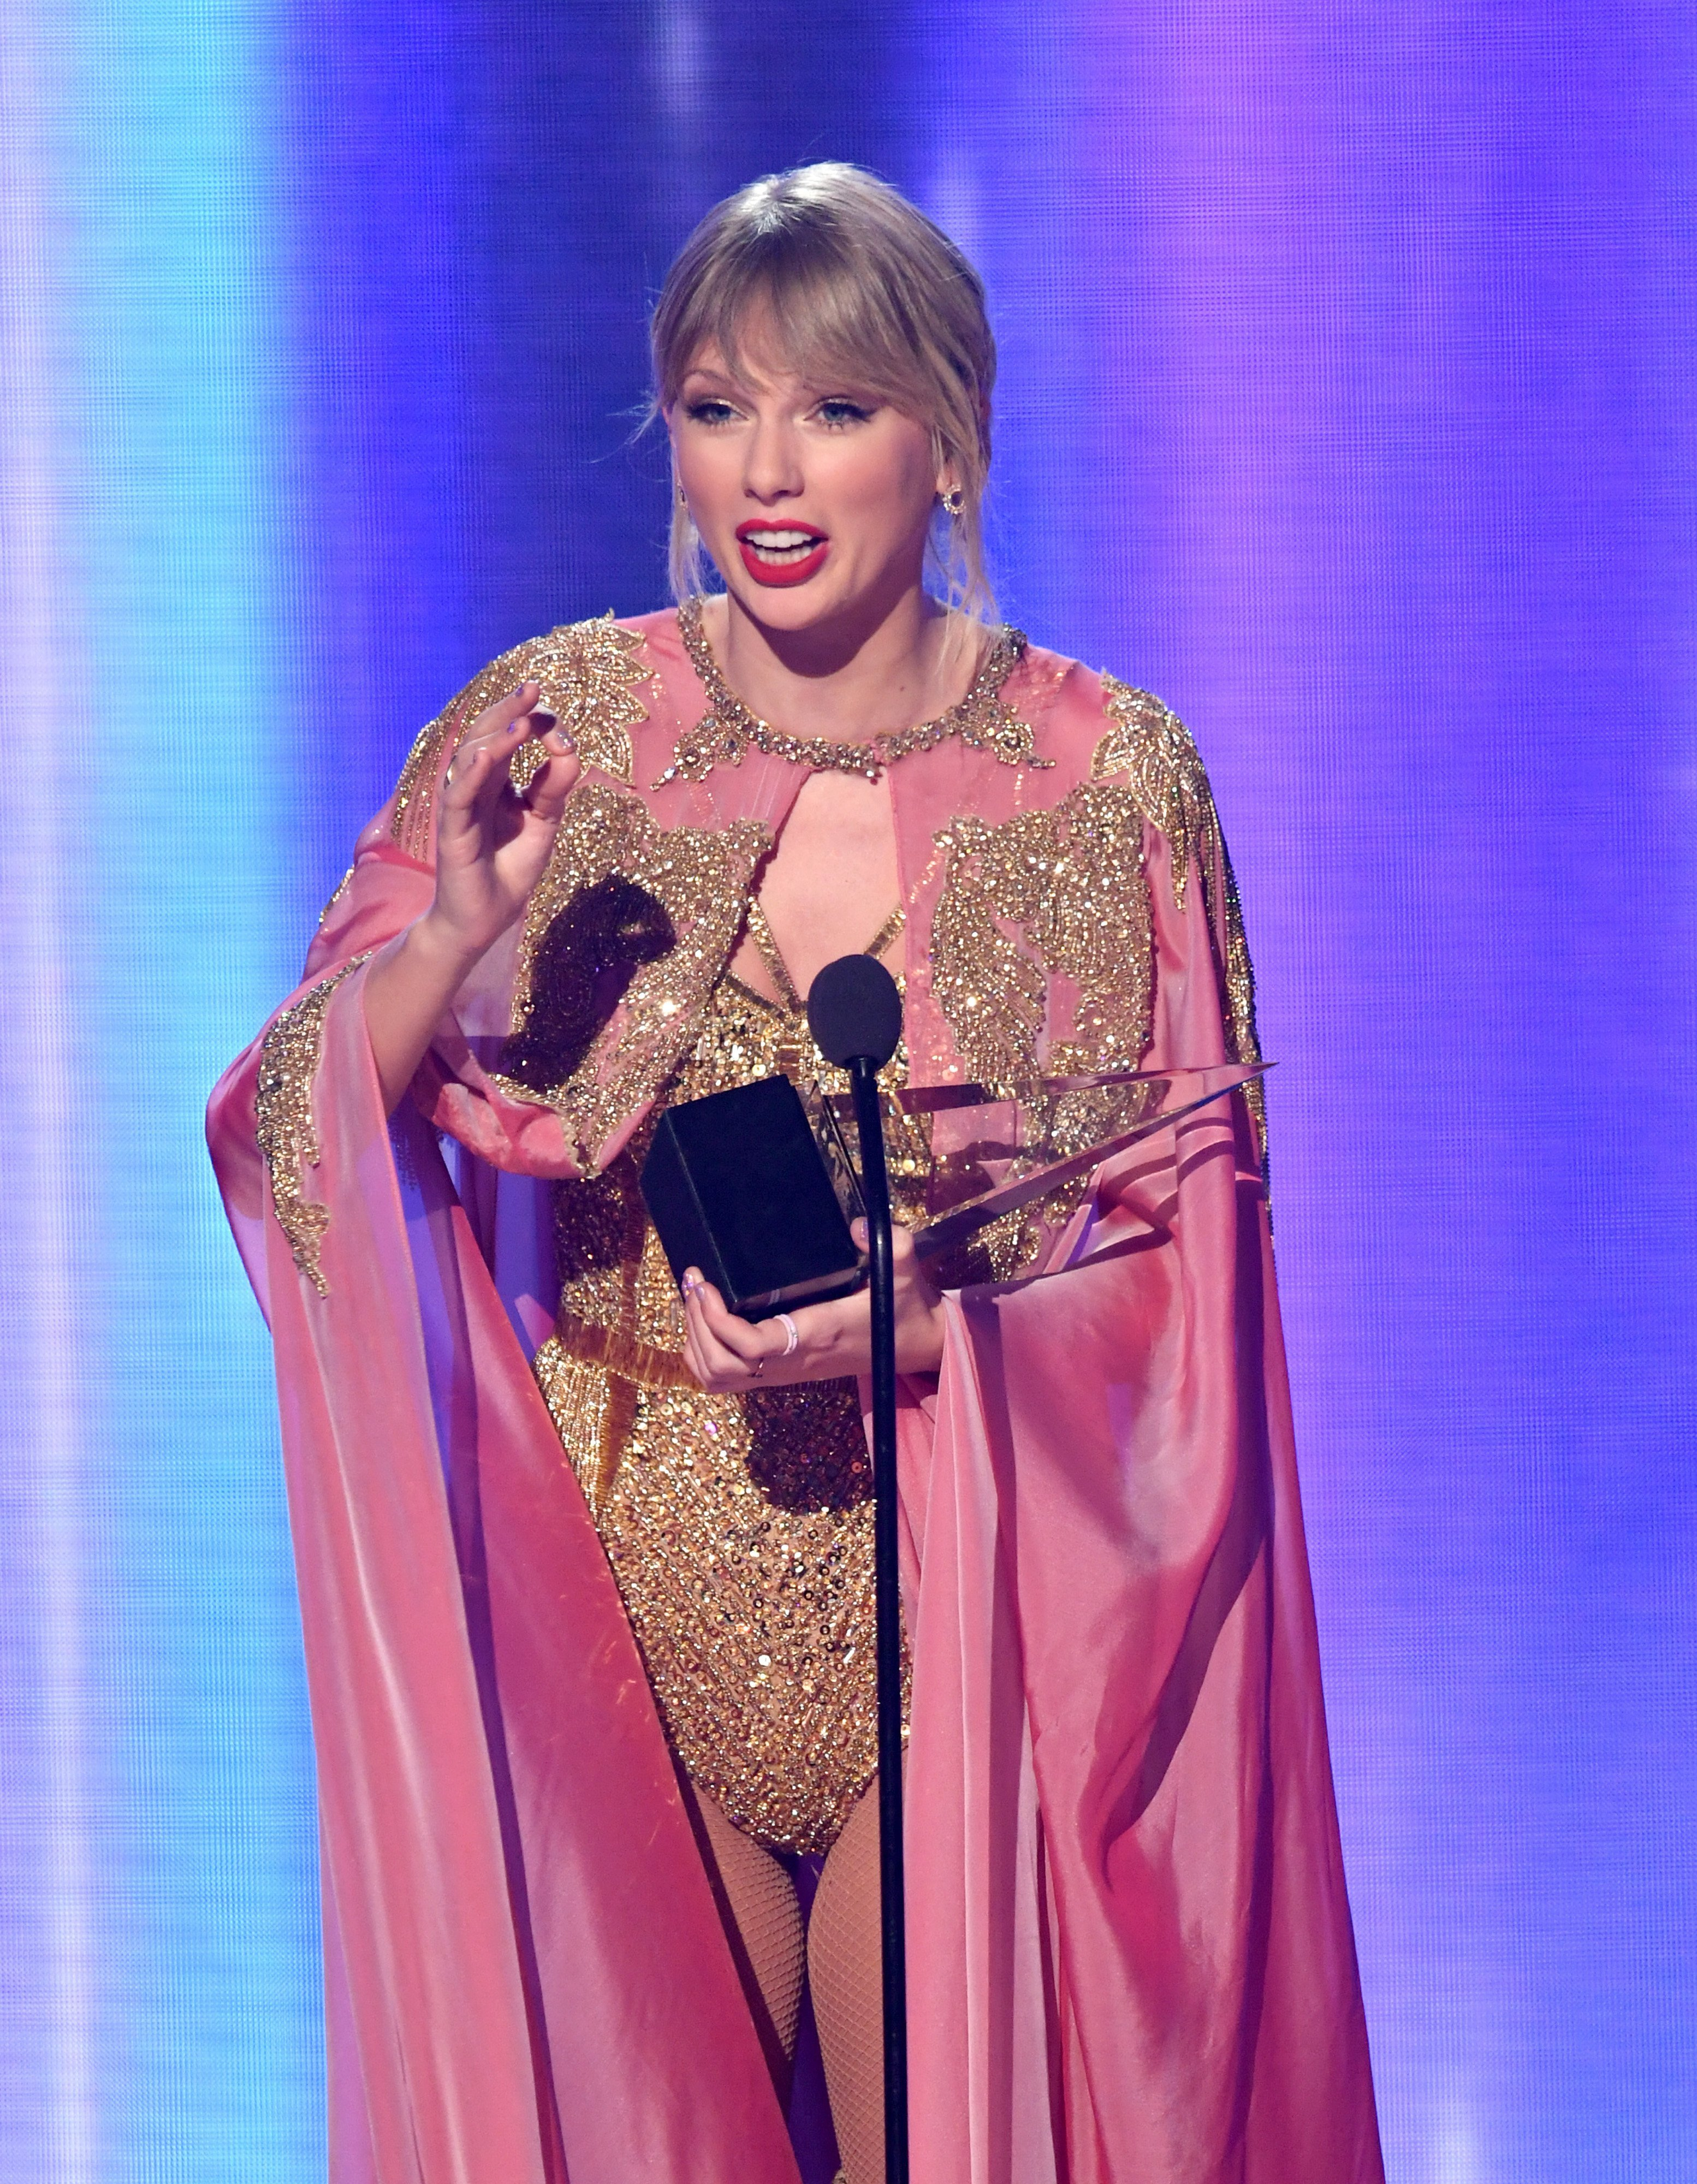 Taylor Swift accepts the Artist of the Year award onstage during the 2019 American Music Awards at Microsoft Theater on November 24, 2019. | Photo: Getty Images.